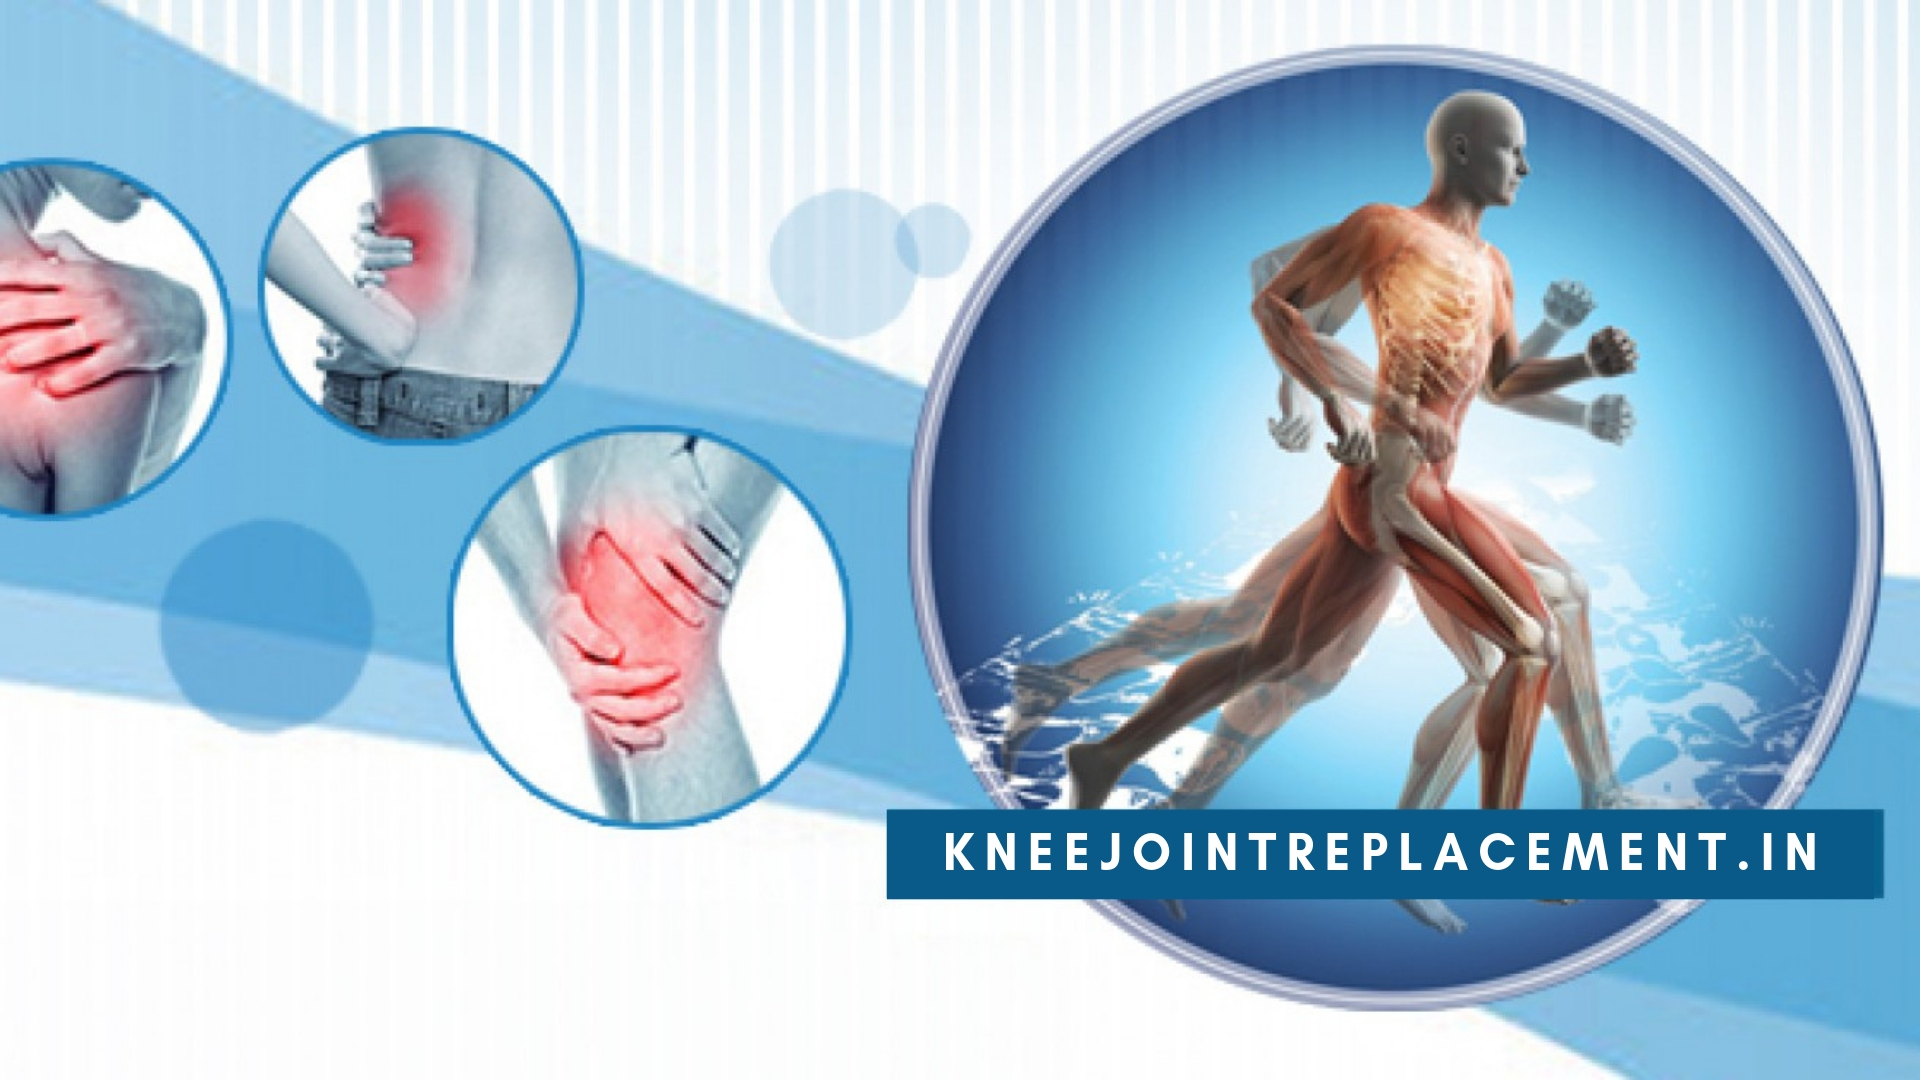 kneejointreplacement.in